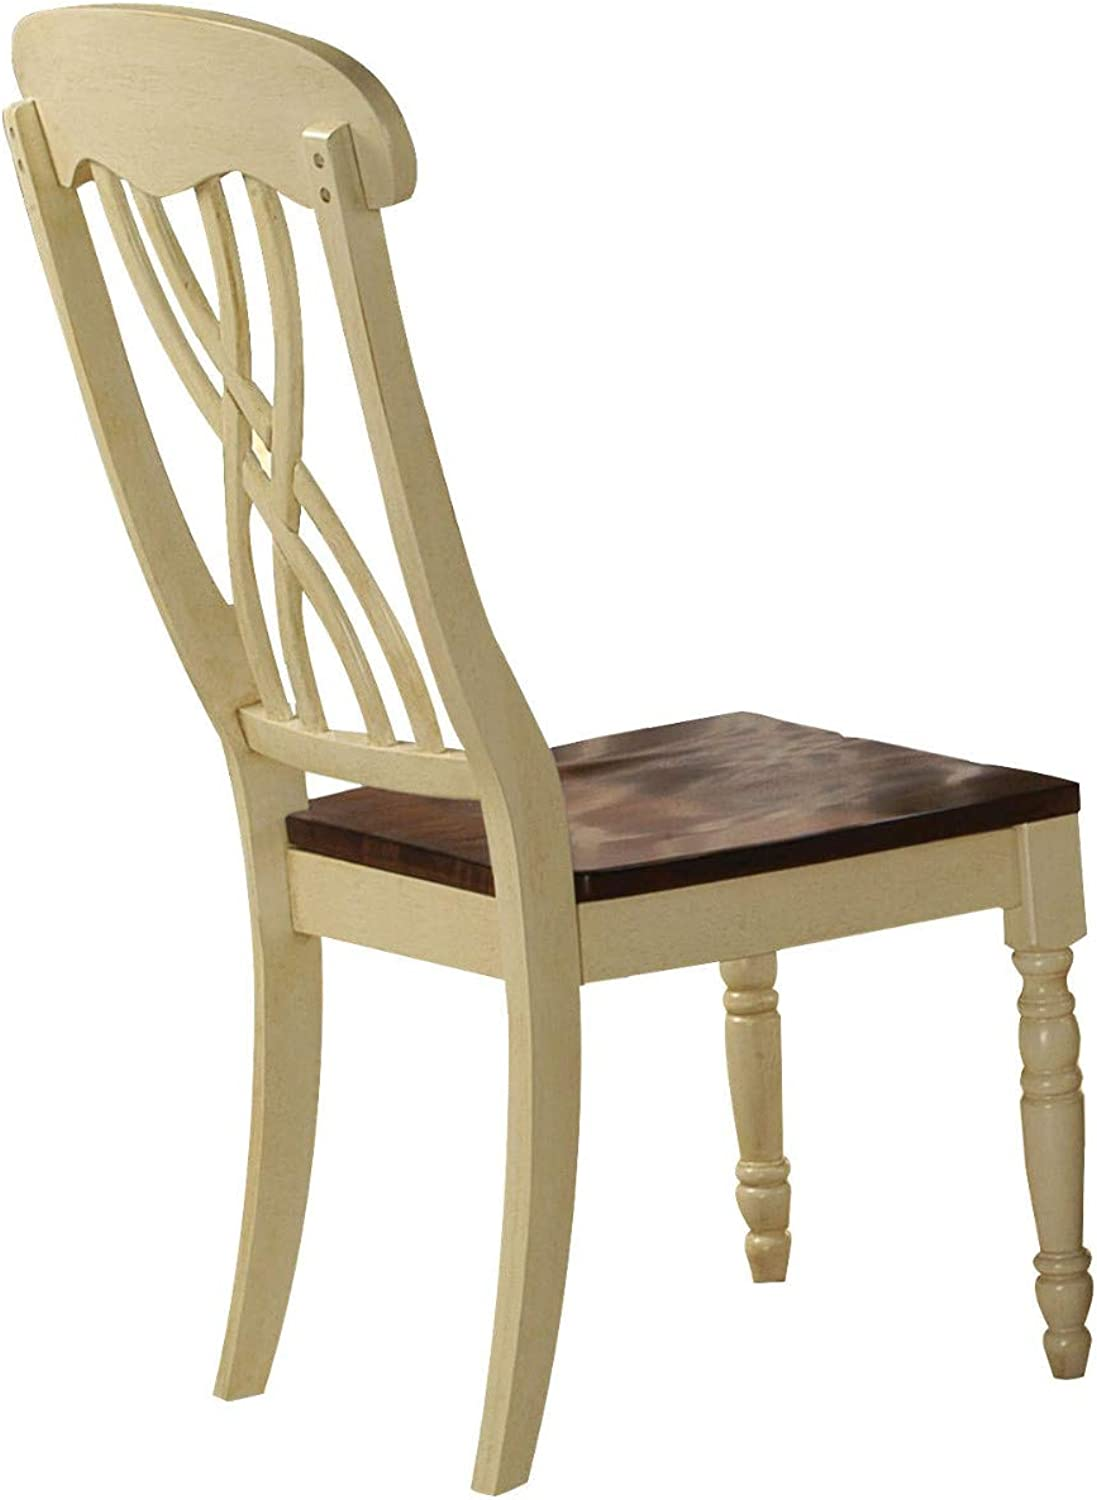 Benjara BM194400 Wooden Side Chair with Overlapped Design Back, Set of Two, White and Brown